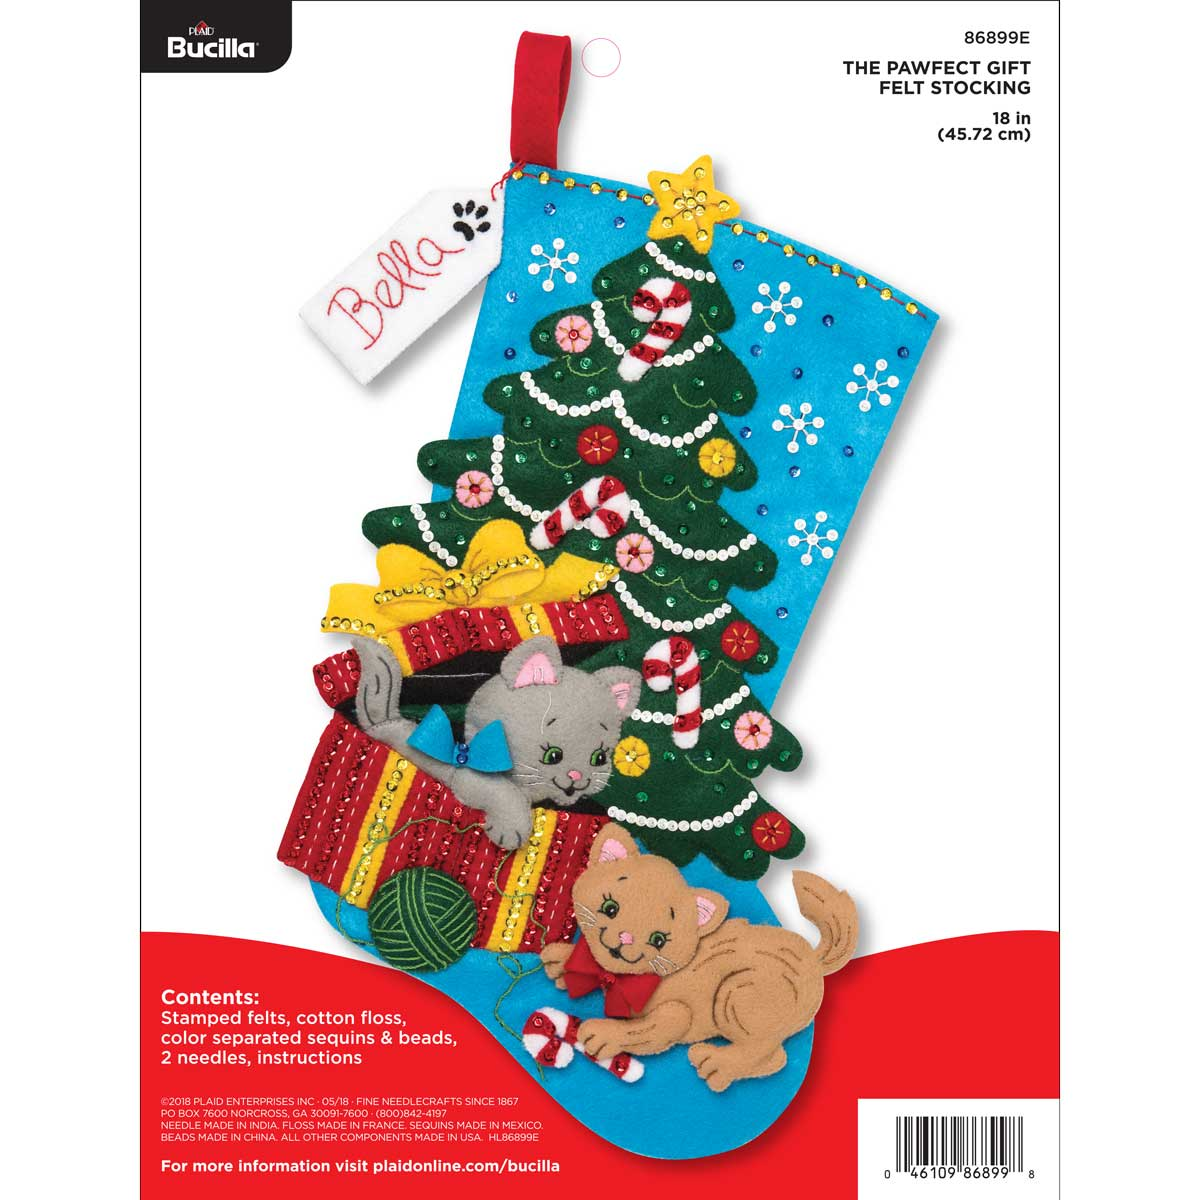 Bucilla ® Seasonal - Felt - Stocking Kits - The Pawfect Gift